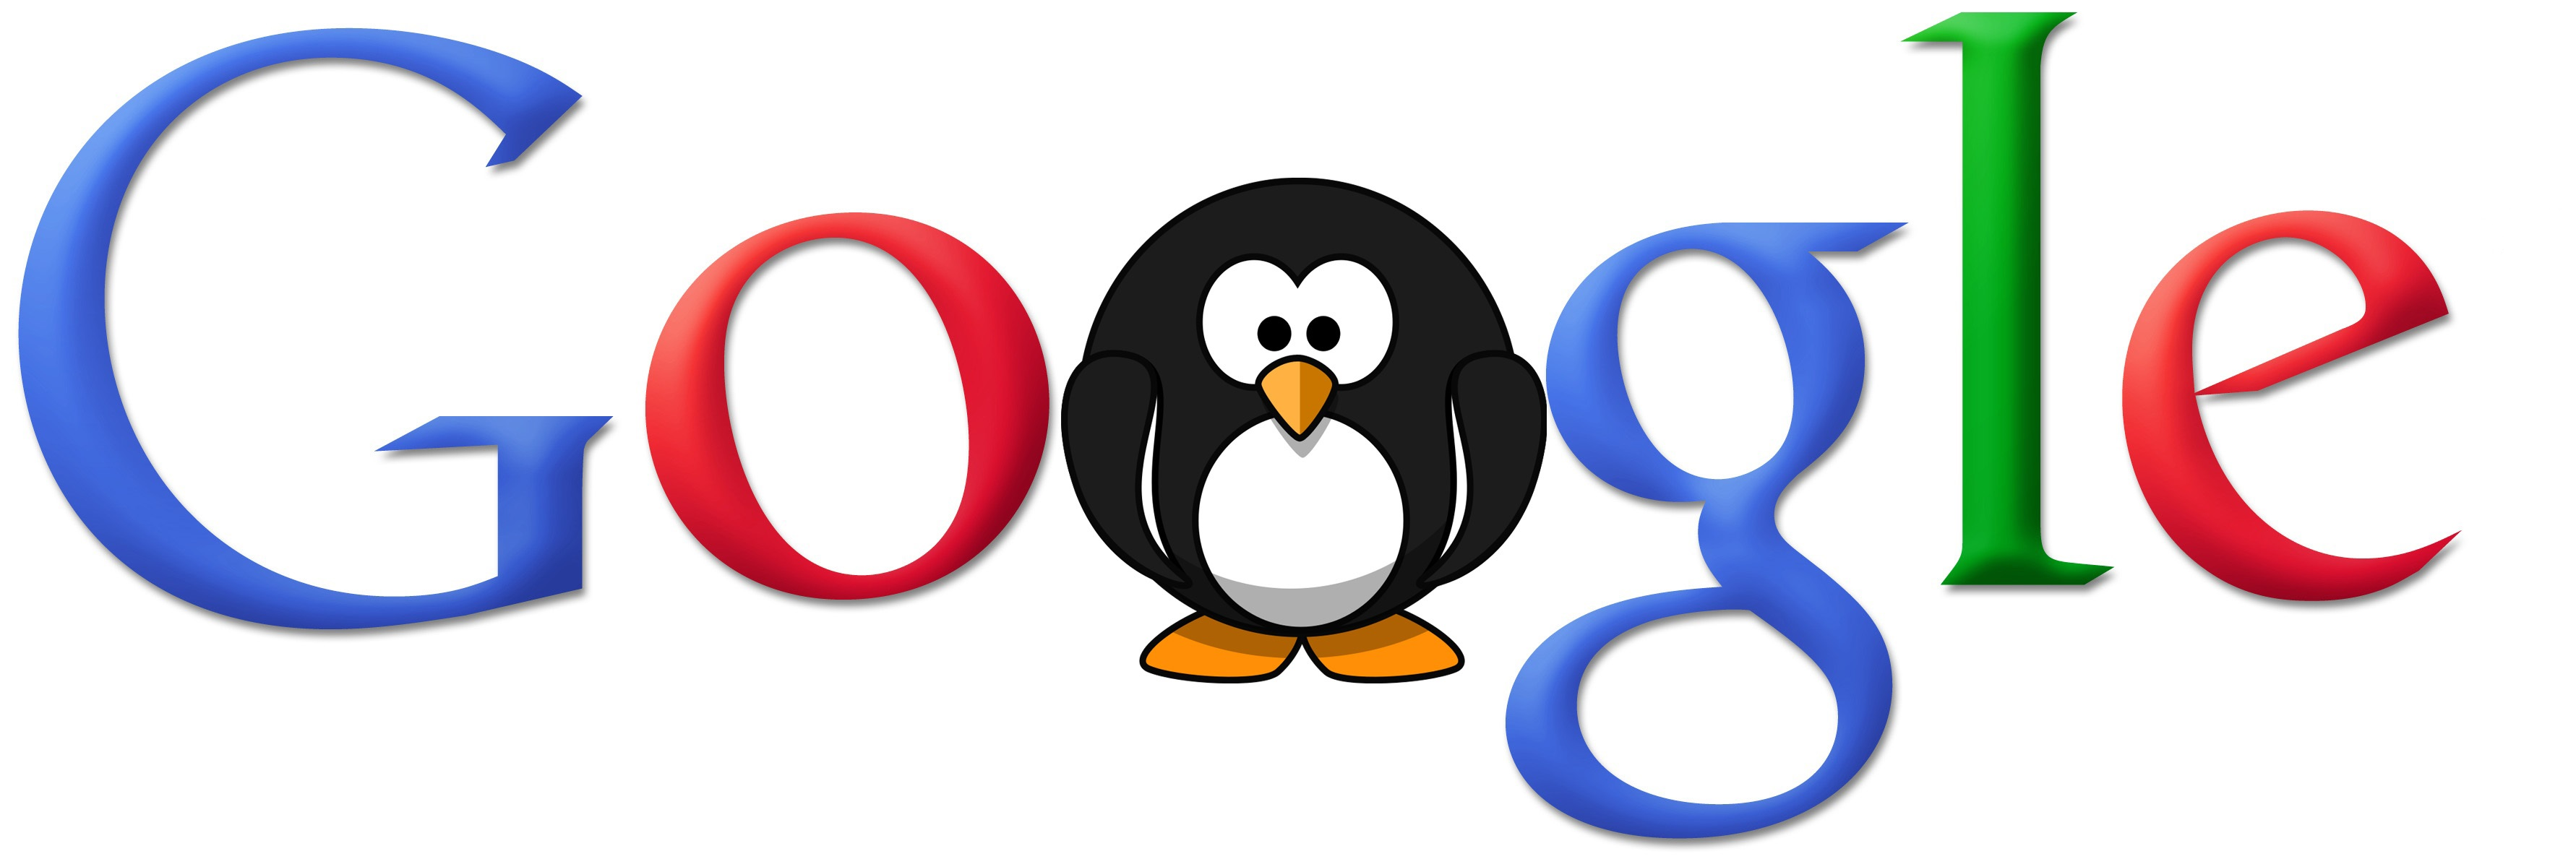 SEO Google Penguin Update